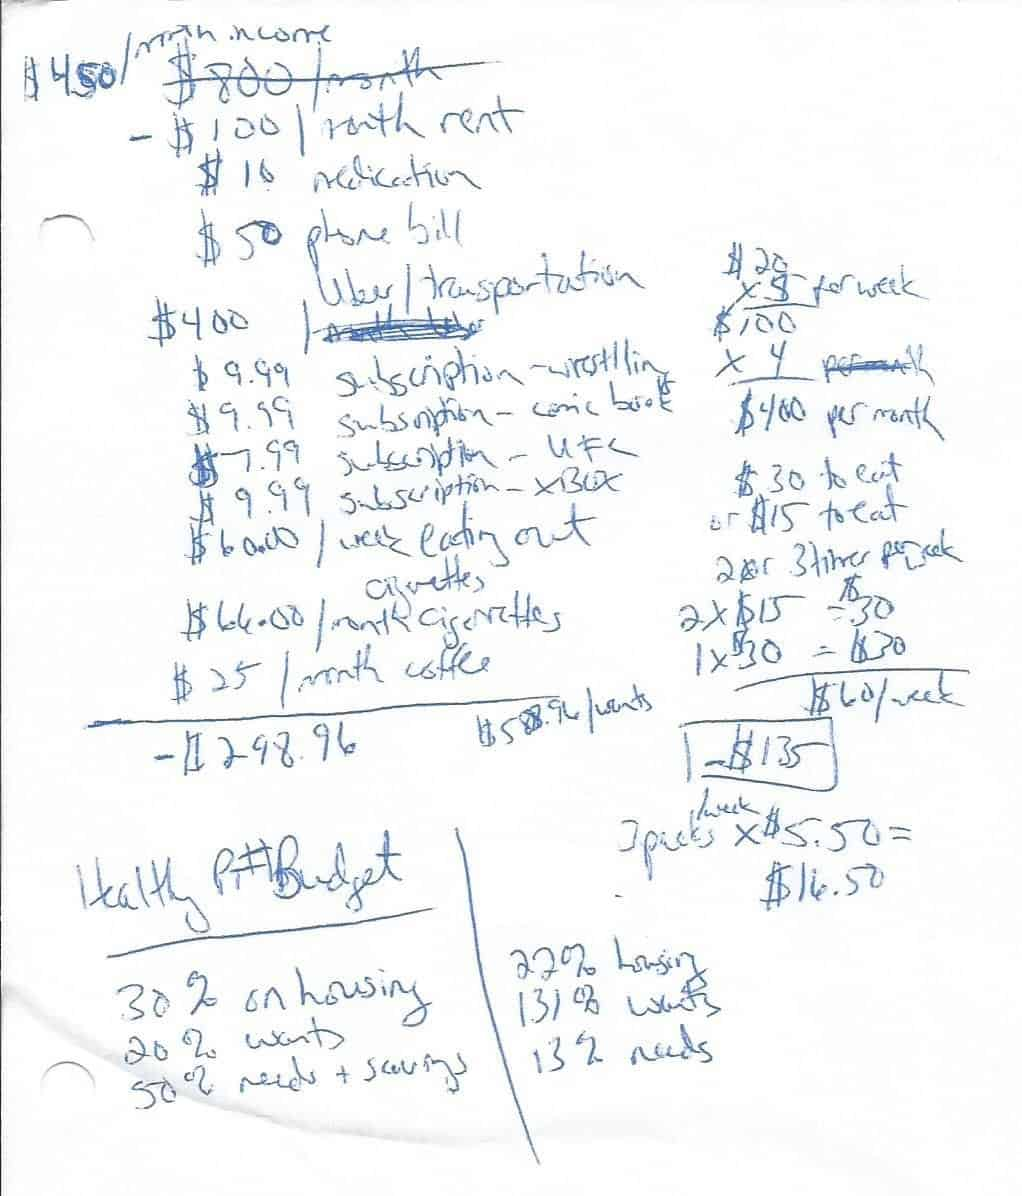 handwritten budget for an 18 year old making $450/month